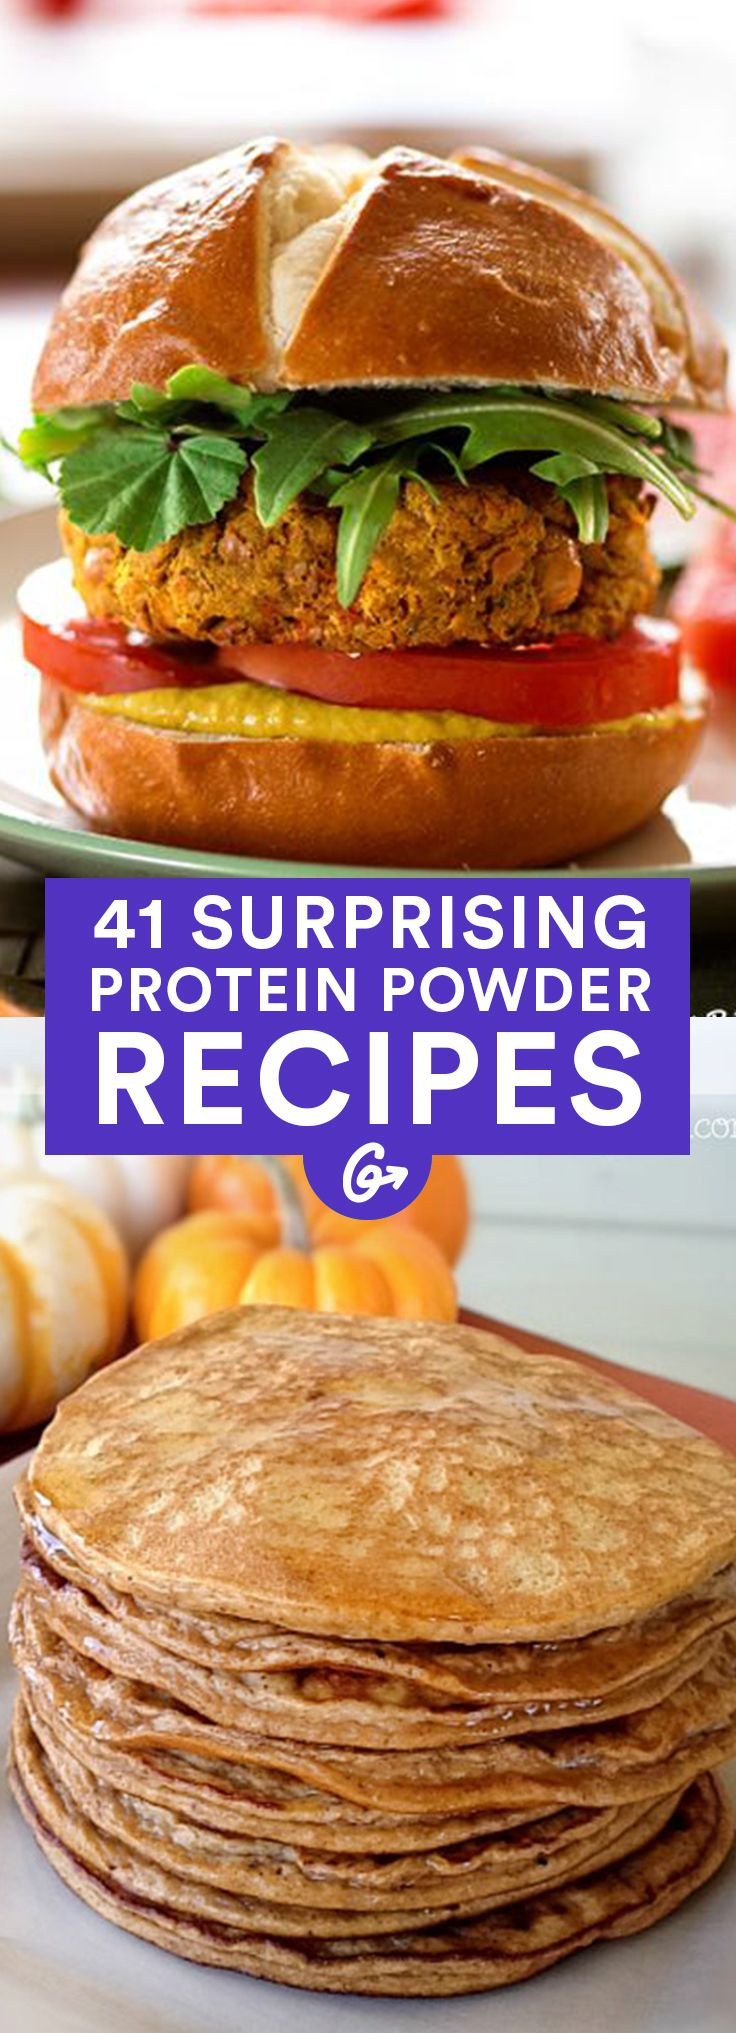 Protein powder isn't only for shakes—it can also be used to make a variety of dishes, from... #healthy #protein #recipes http://greatist.com/eat/protein-powder-recipes